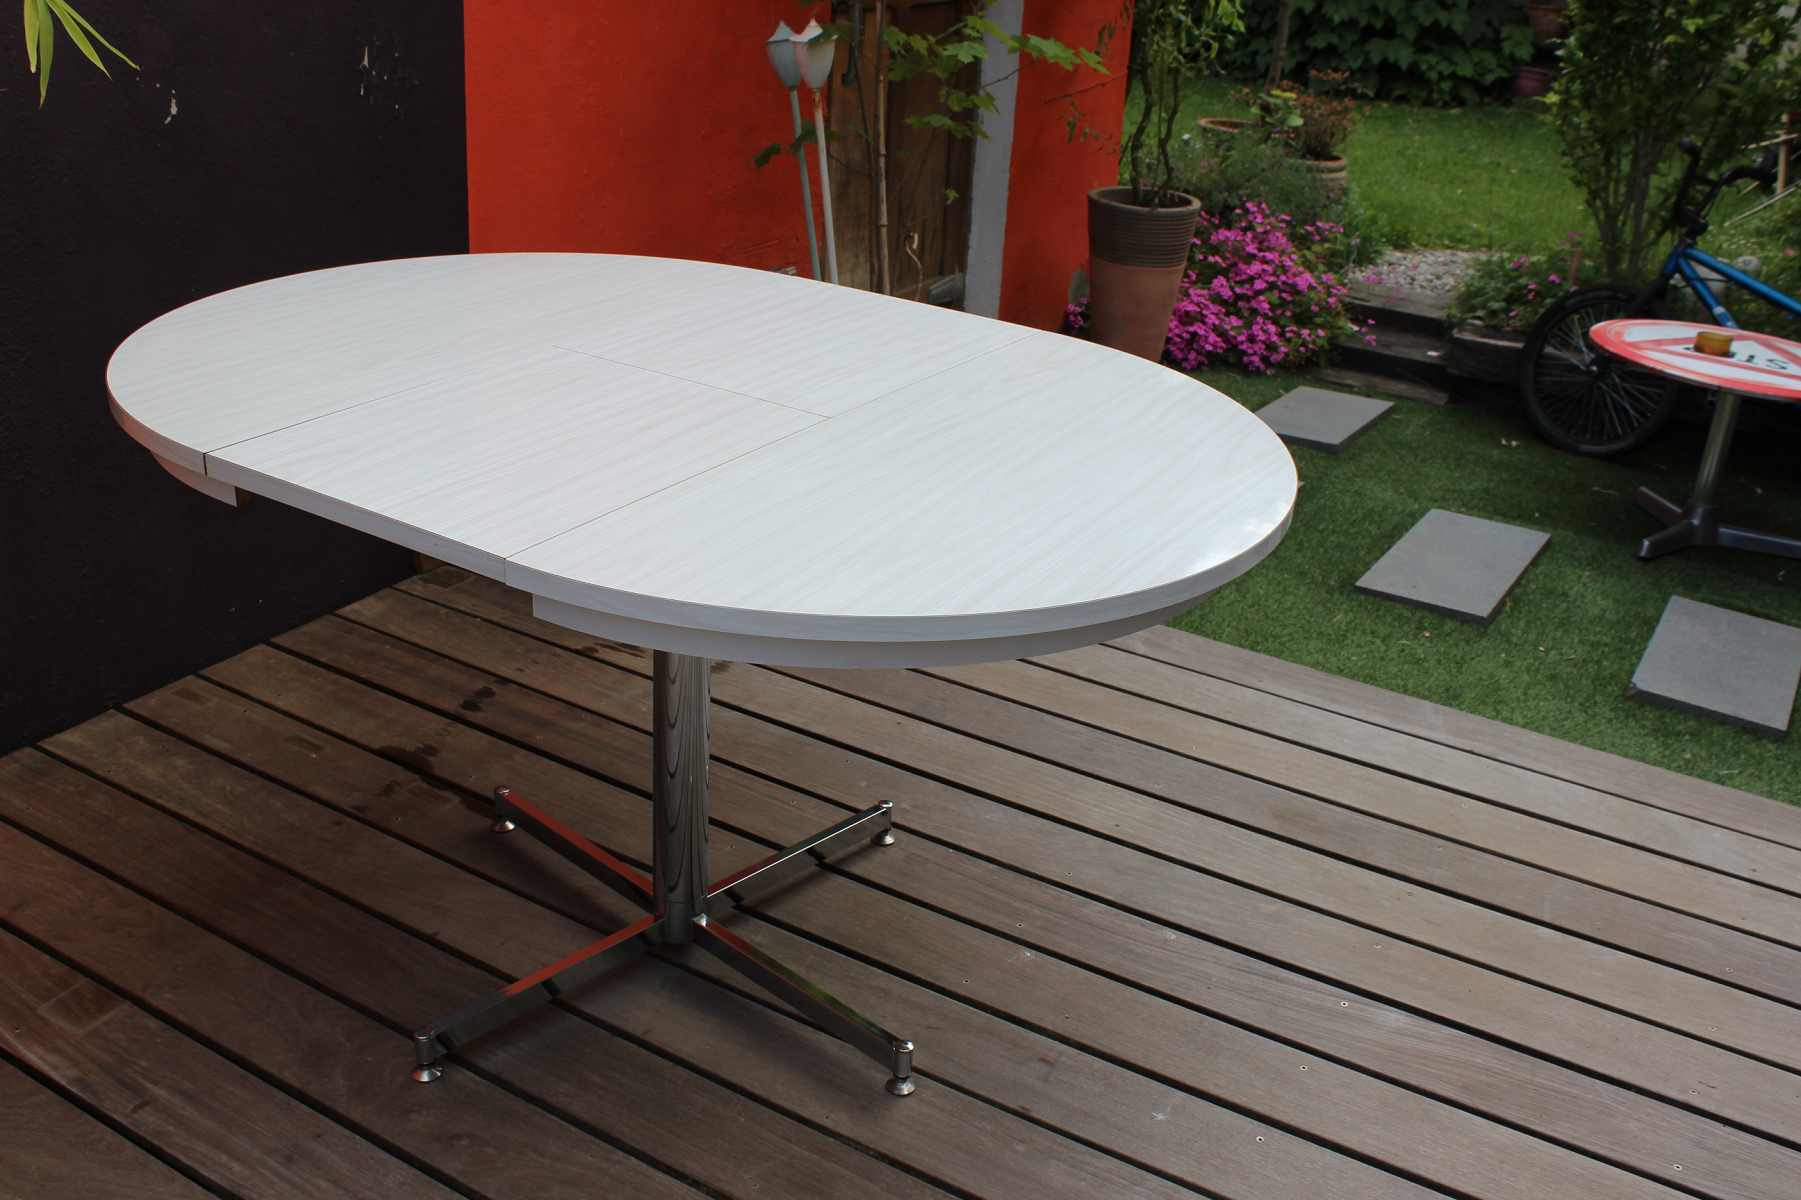 Table formica en version ronde ou ovale vintage by fabichka - Table de cuisine avec rallonge ...